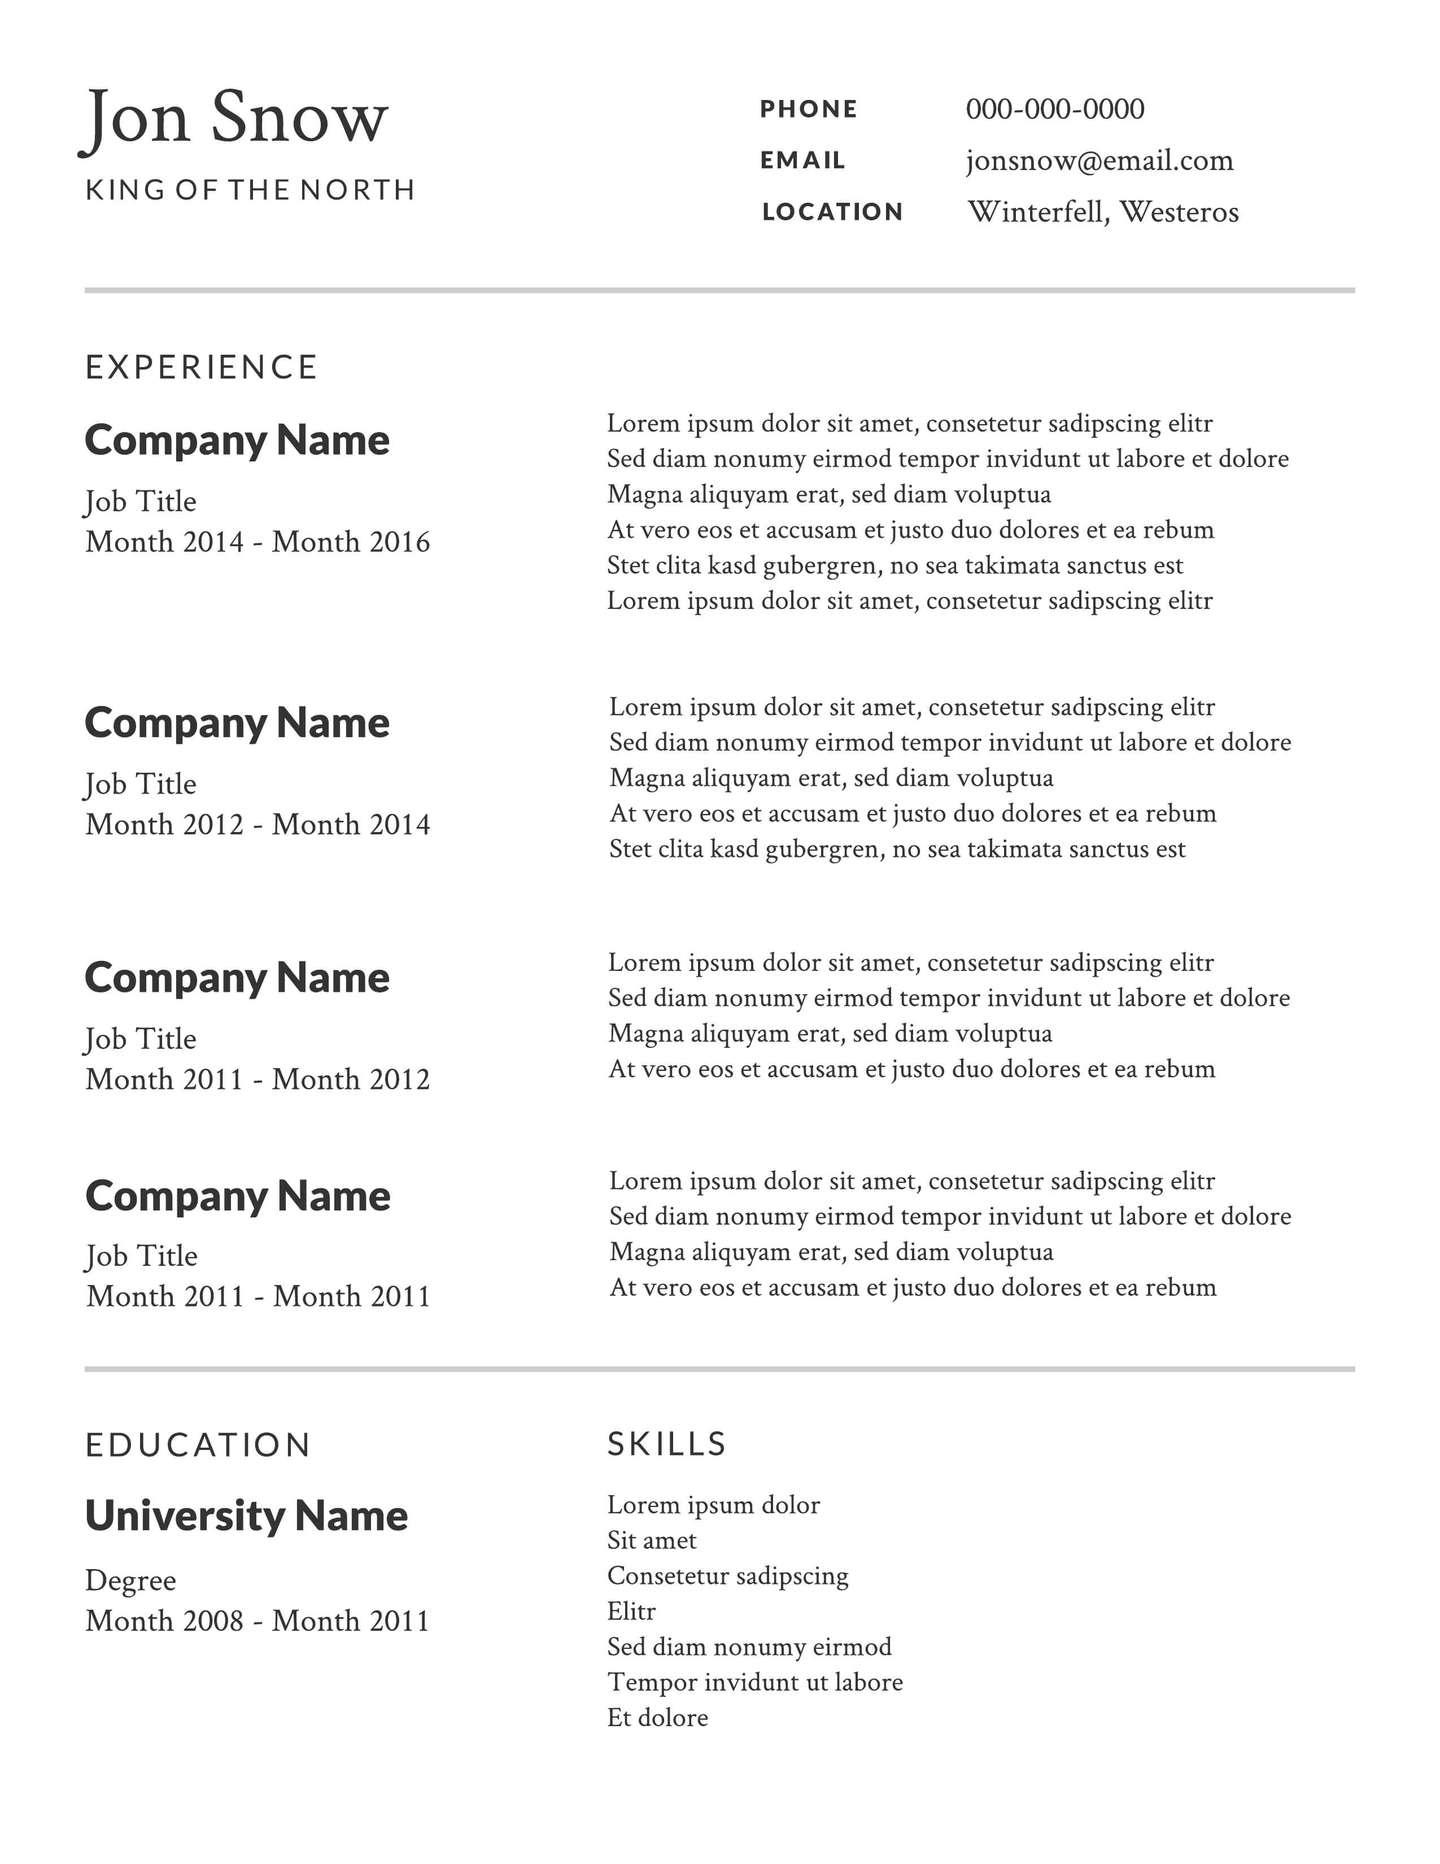 free professional resume templates downloadable lucidpress can find 2x obama timeline Resume Where Can I Find Free Resume Templates